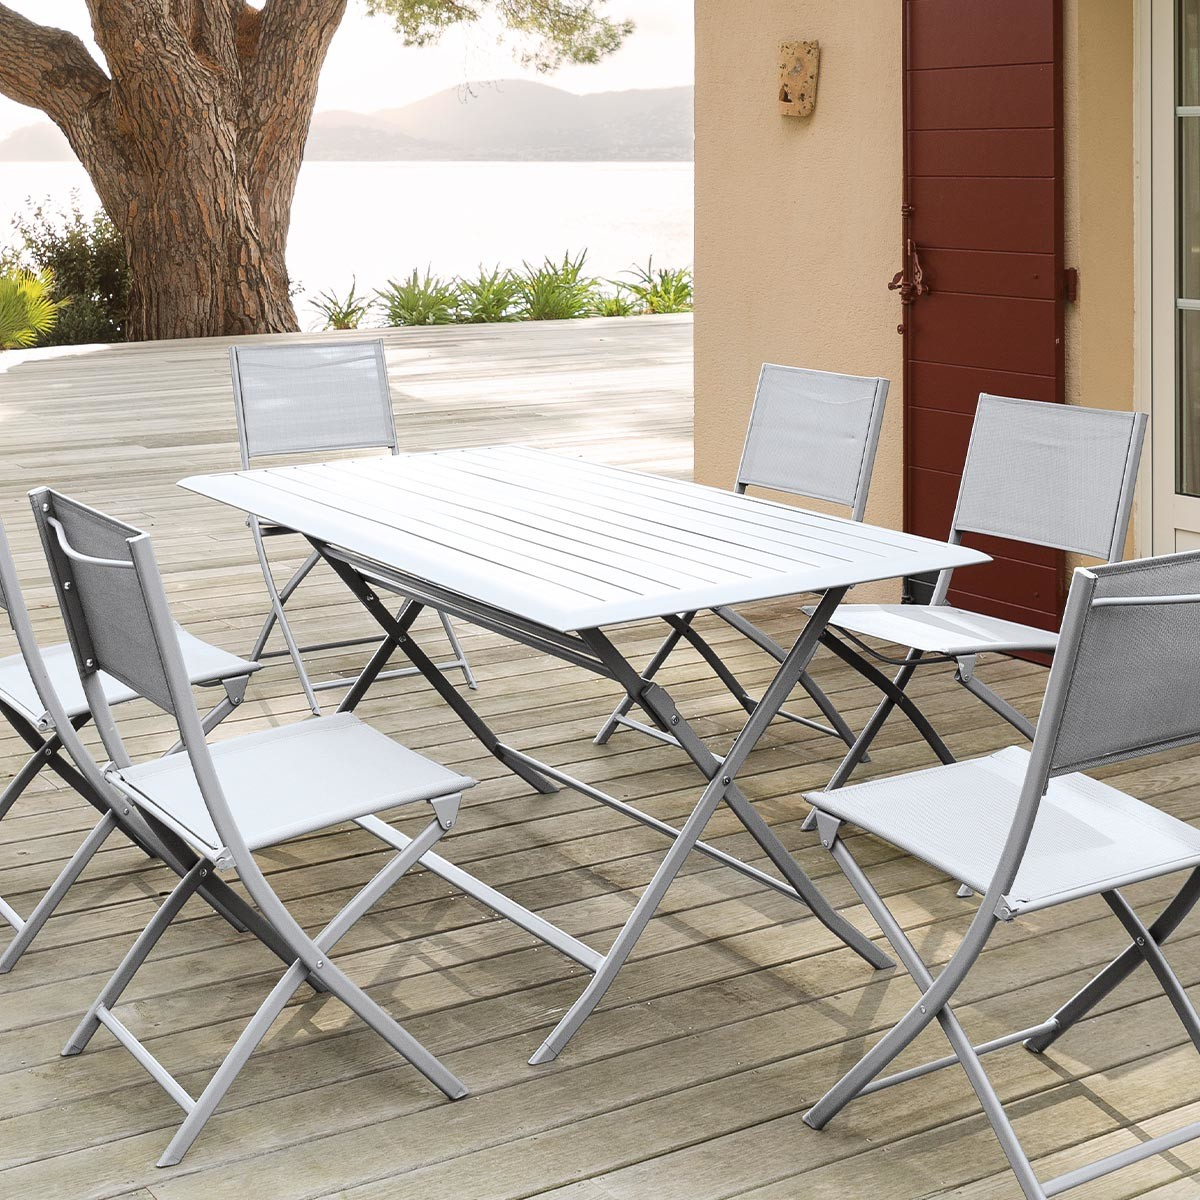 Table de terrasse pliante rectangulaire azua silver mat hesp ride 6 places for Table de terrasse pliante